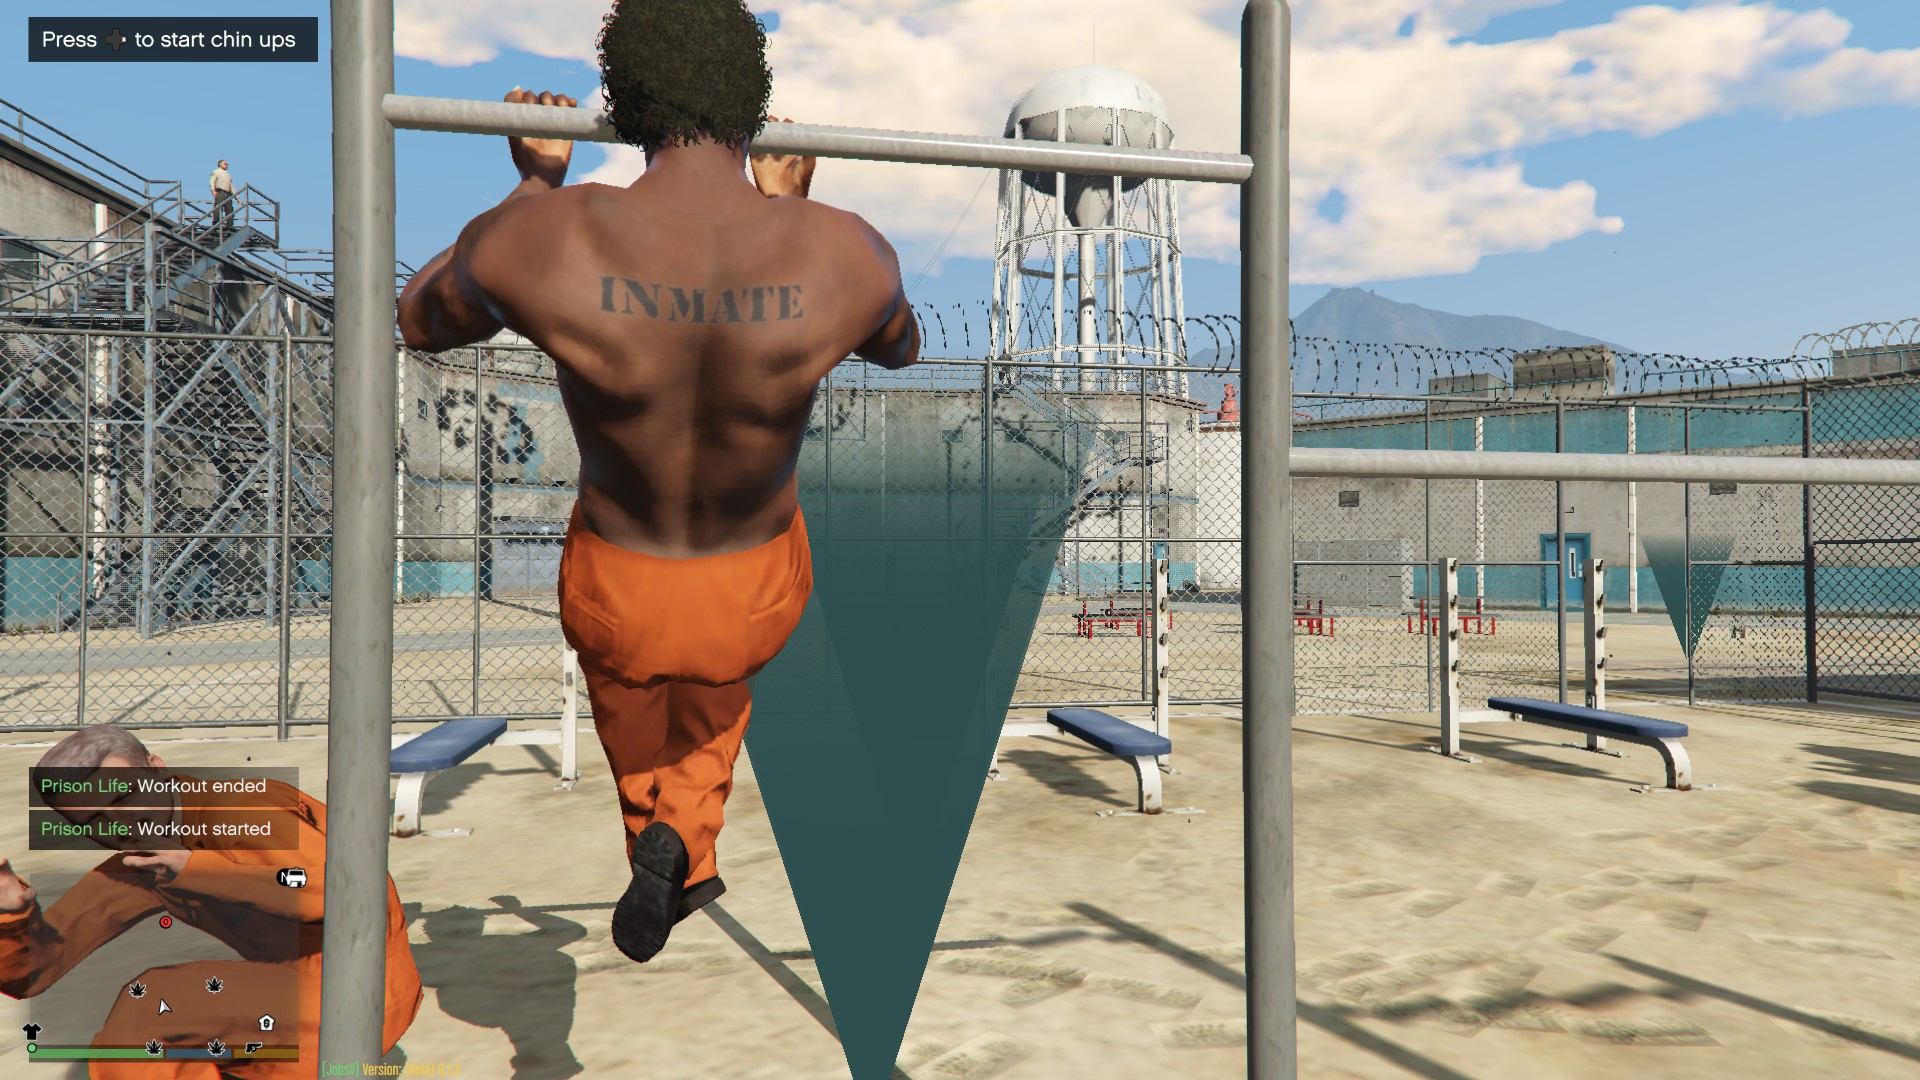 Prison life gang system workout at gym jobs and more for Gimnasio 360 life